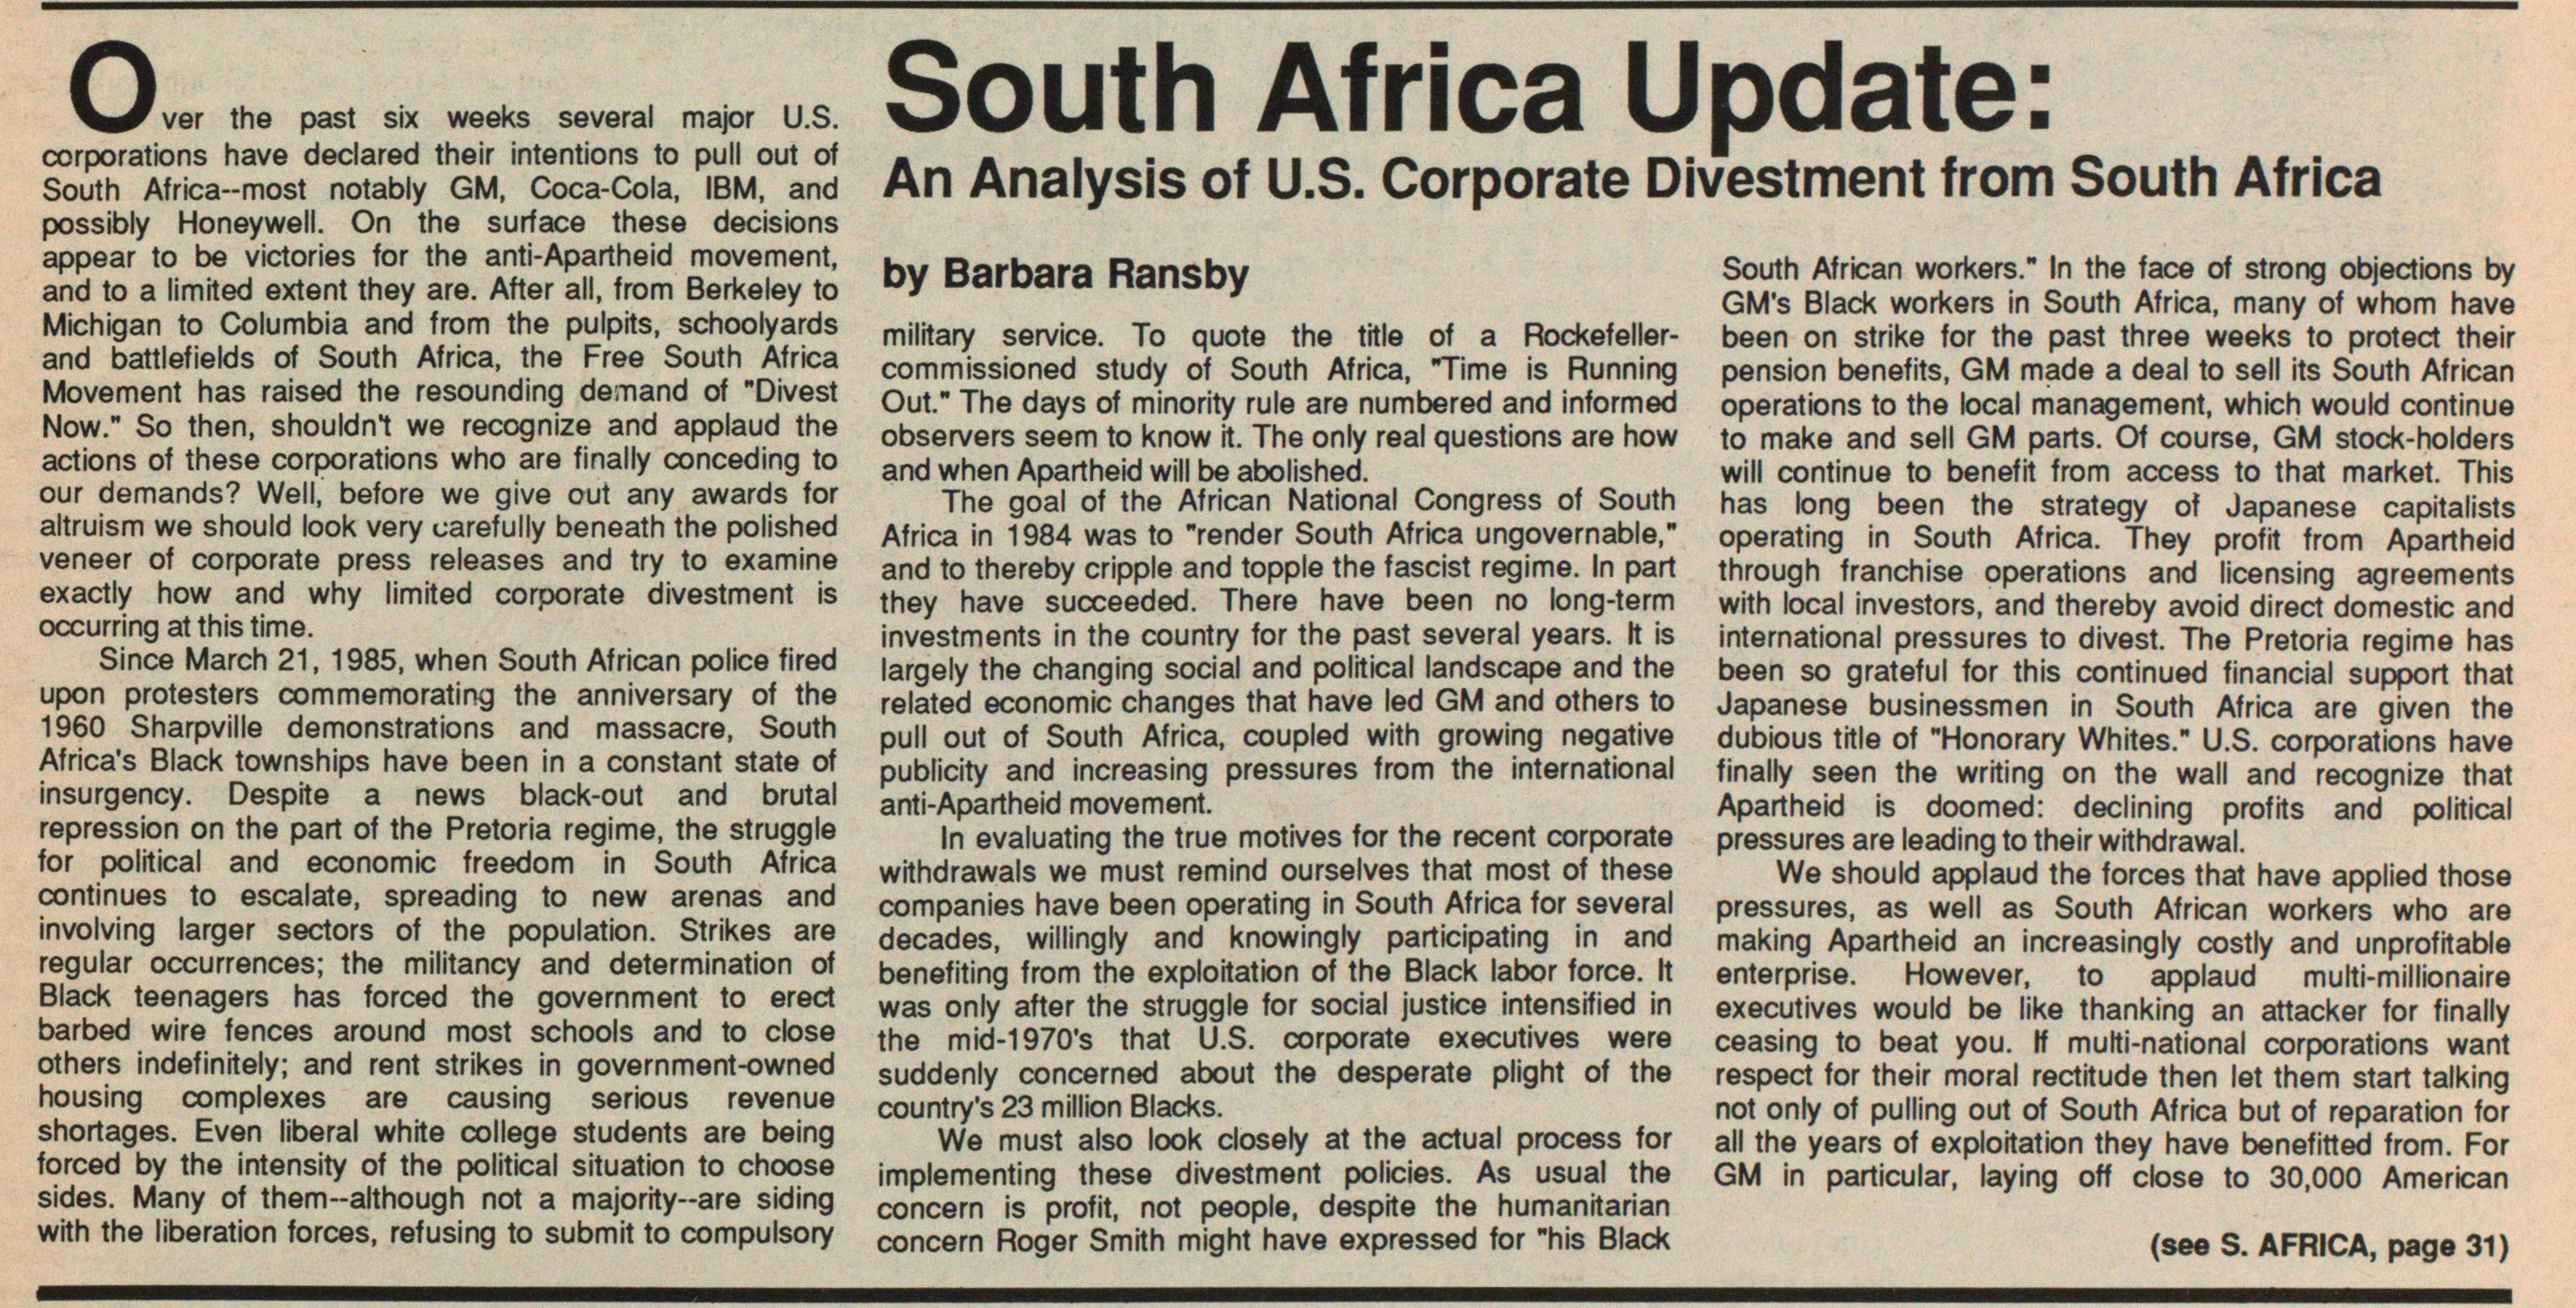 South Africa Update: An Analysis Of U.s. Corporate Divestment From South Africa image